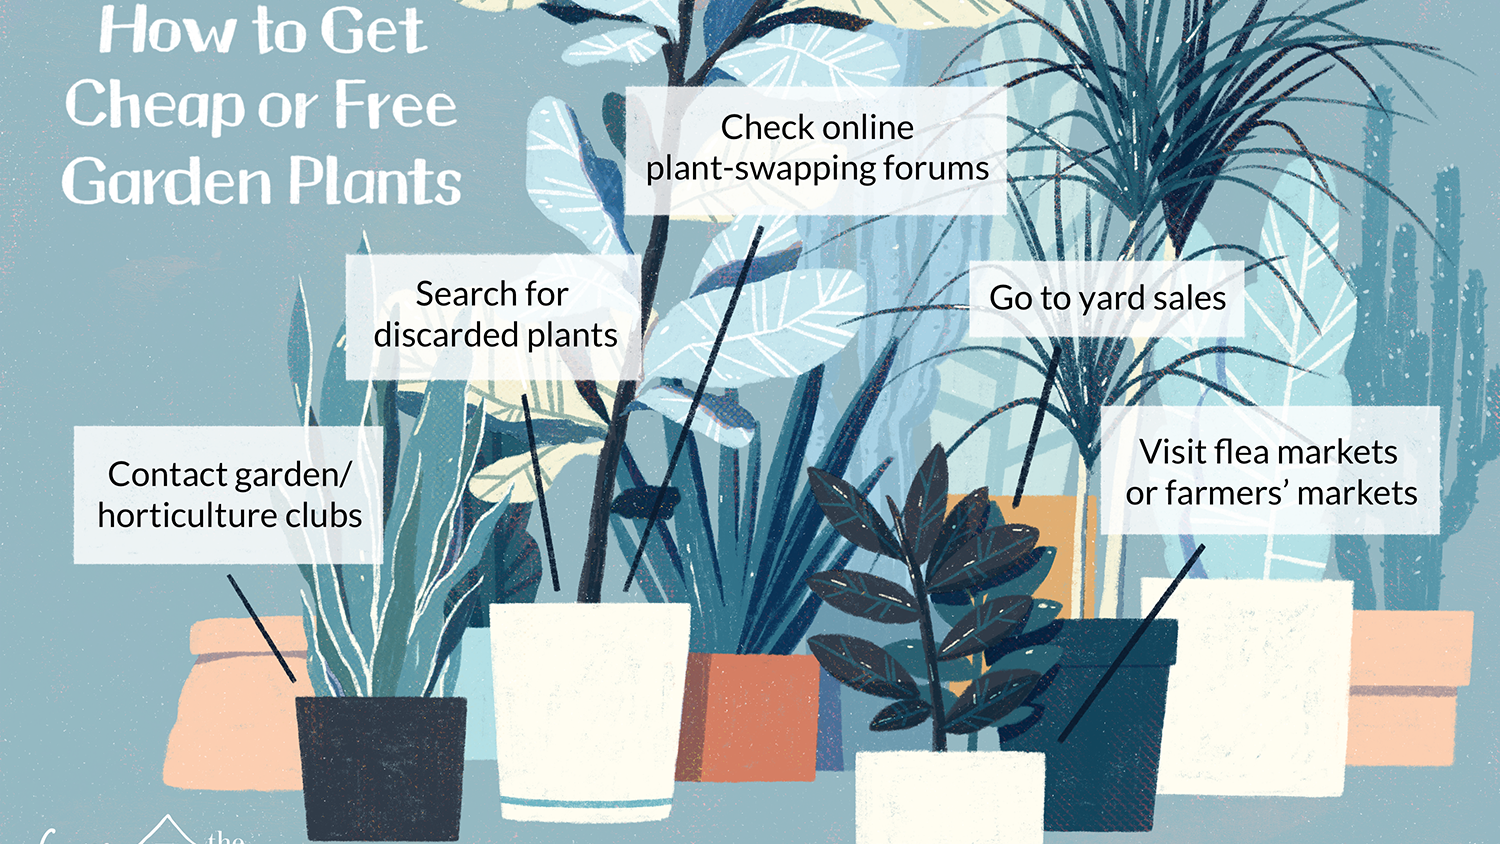 12 Ways To Find Free Or Cheap Garden Plants,Best Places To Travel In The Us In October 2020